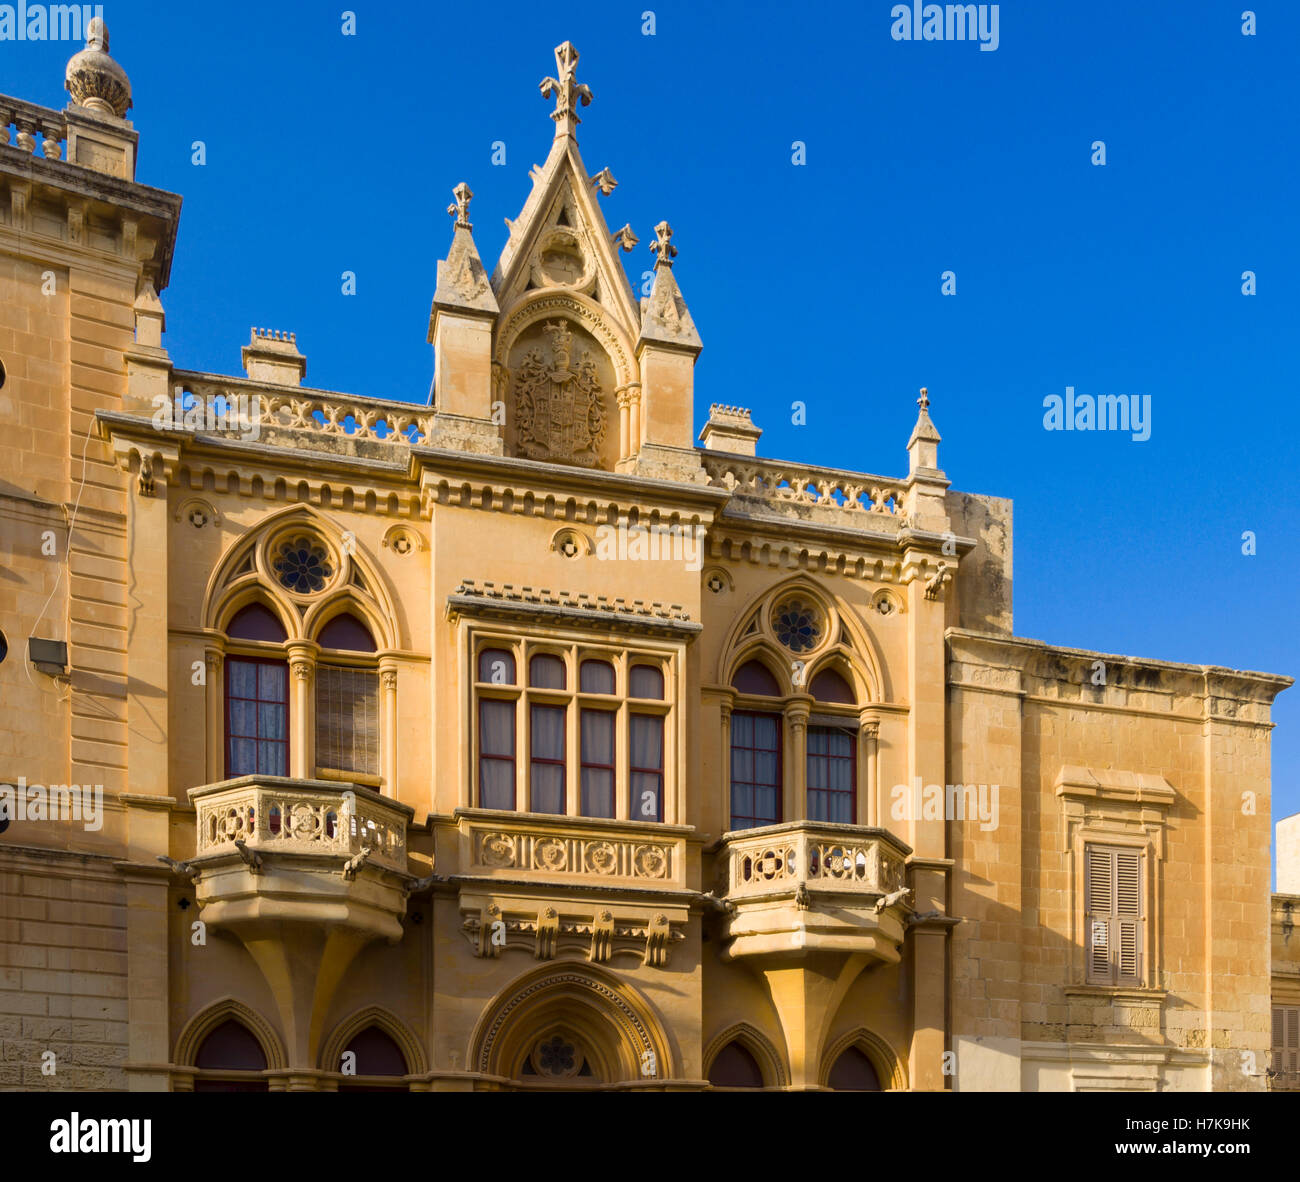 Mdina, old walled city baroque architecture. Gothic-baroque limestone architecture in the cathedral square. - Stock Image